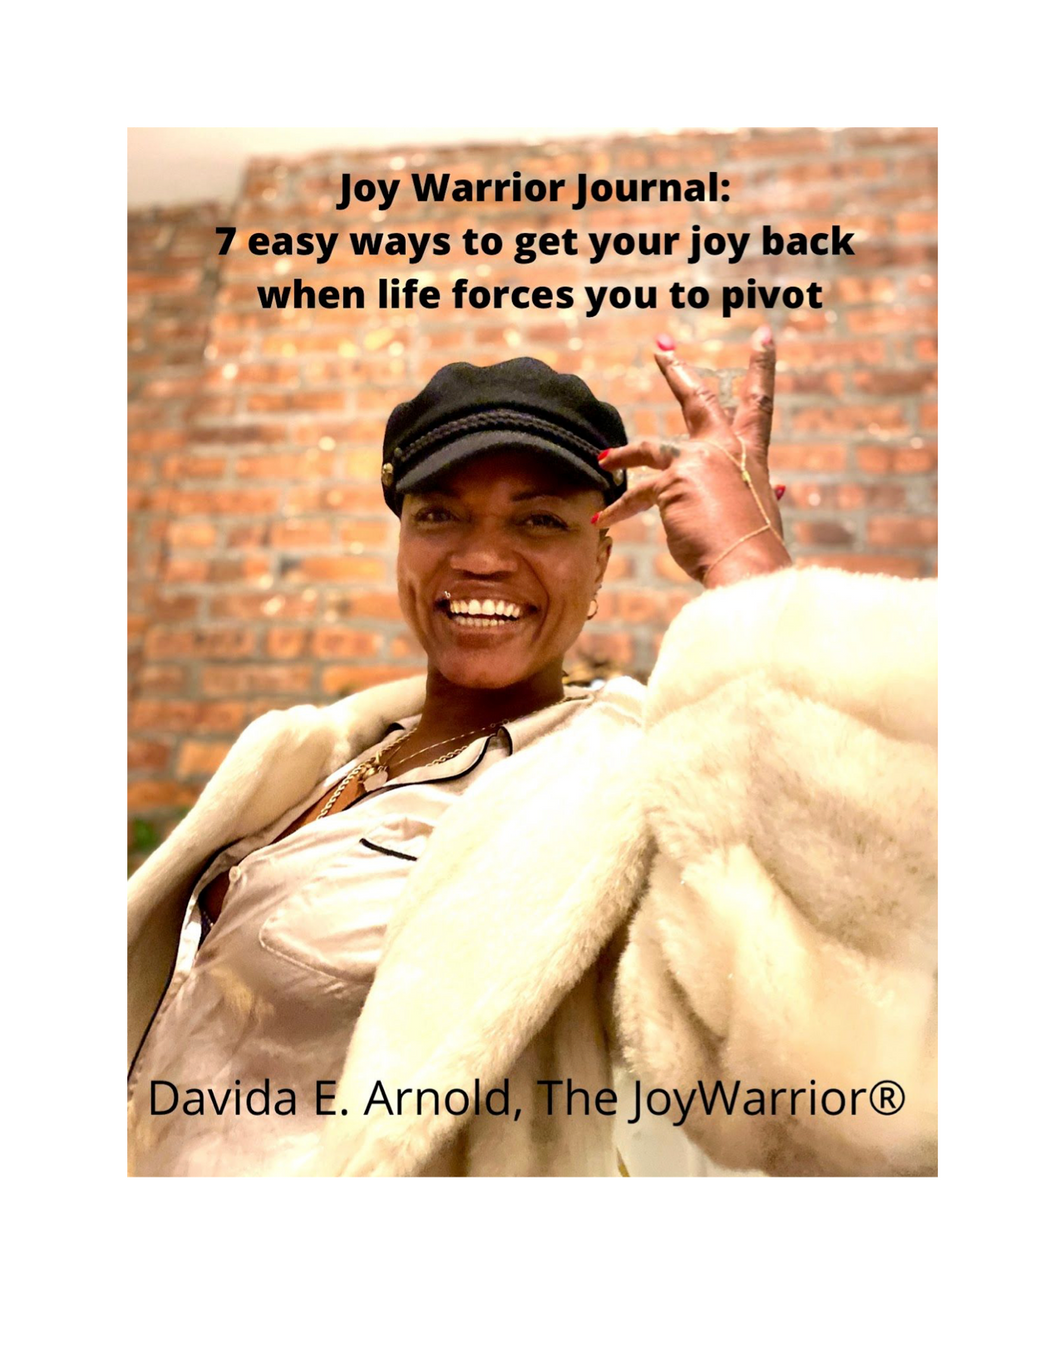 Joy Warrior Journal: 7 easy ways to get your joy back when life forces you to pivot